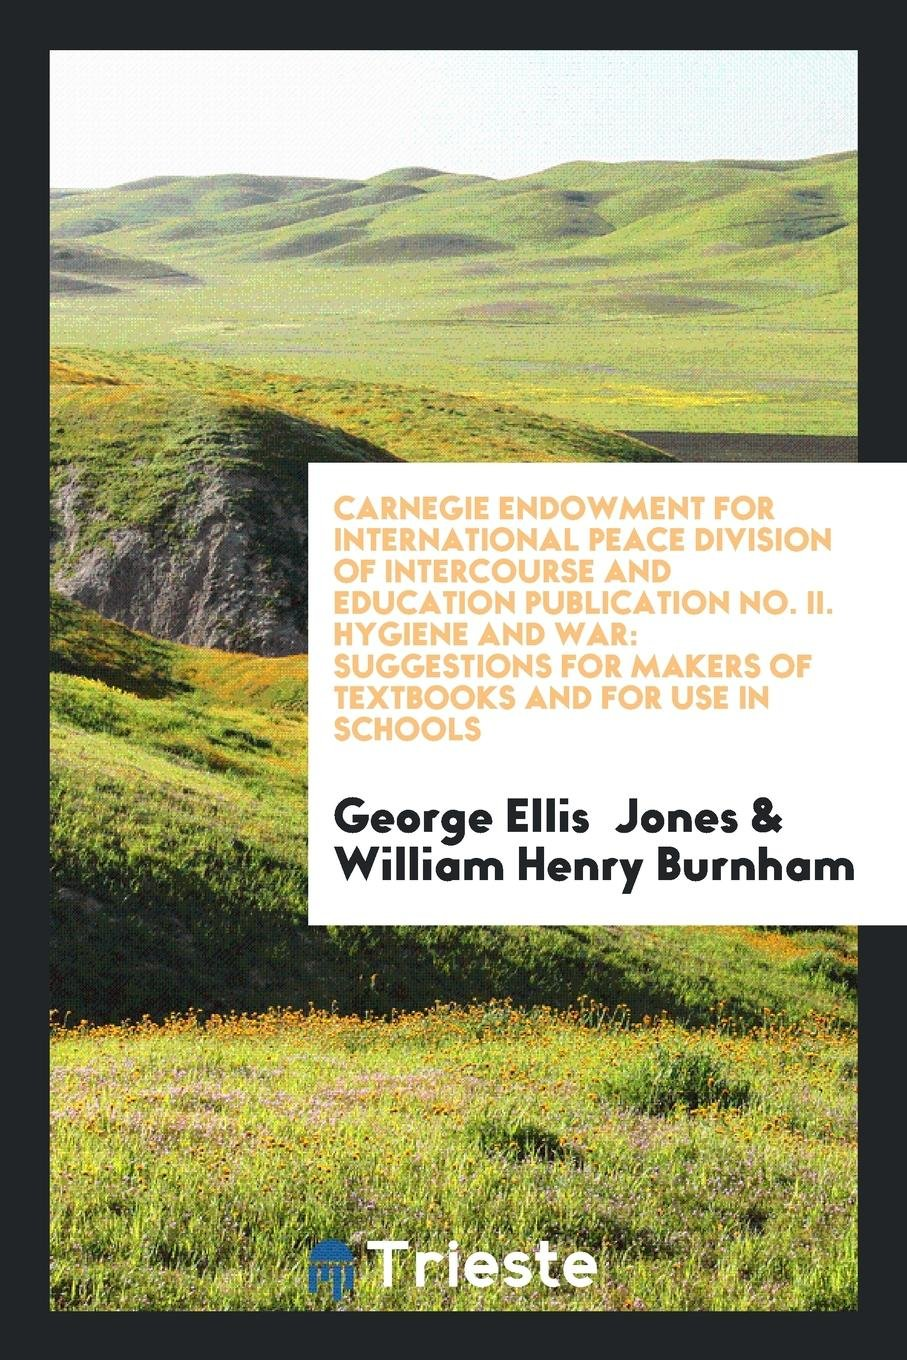 Read Online Carnegie Endowment for International Peace Division of Intercourse and Education Publication No. II. Hygiene and War: Suggestions for Makers of Textbooks and for Use in Schools ebook